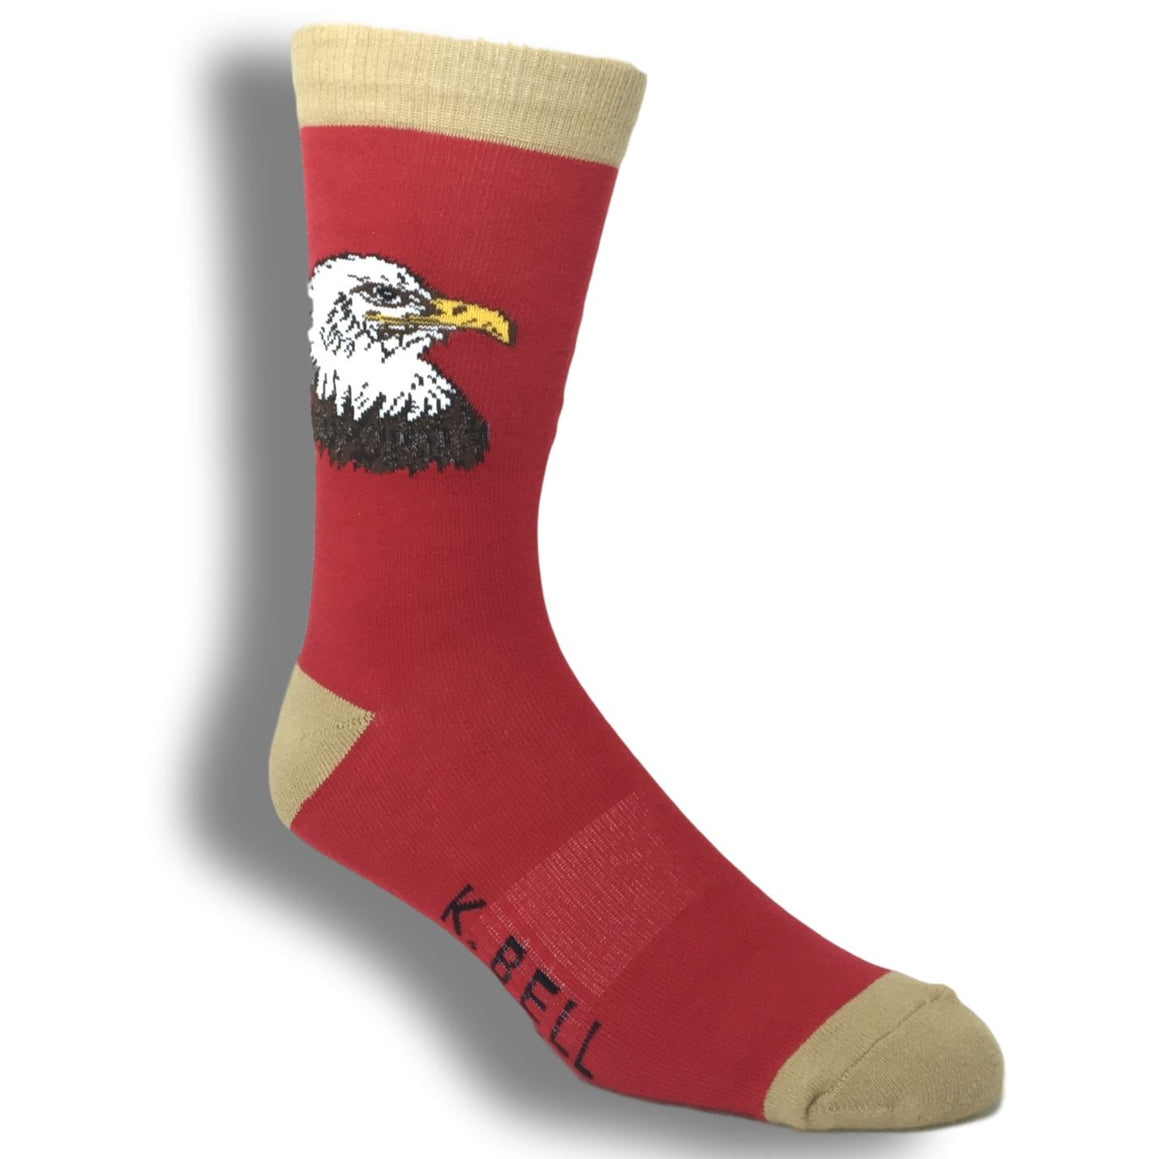 American Bald Eagle - Made In America by K.Bell - The Sock Spot